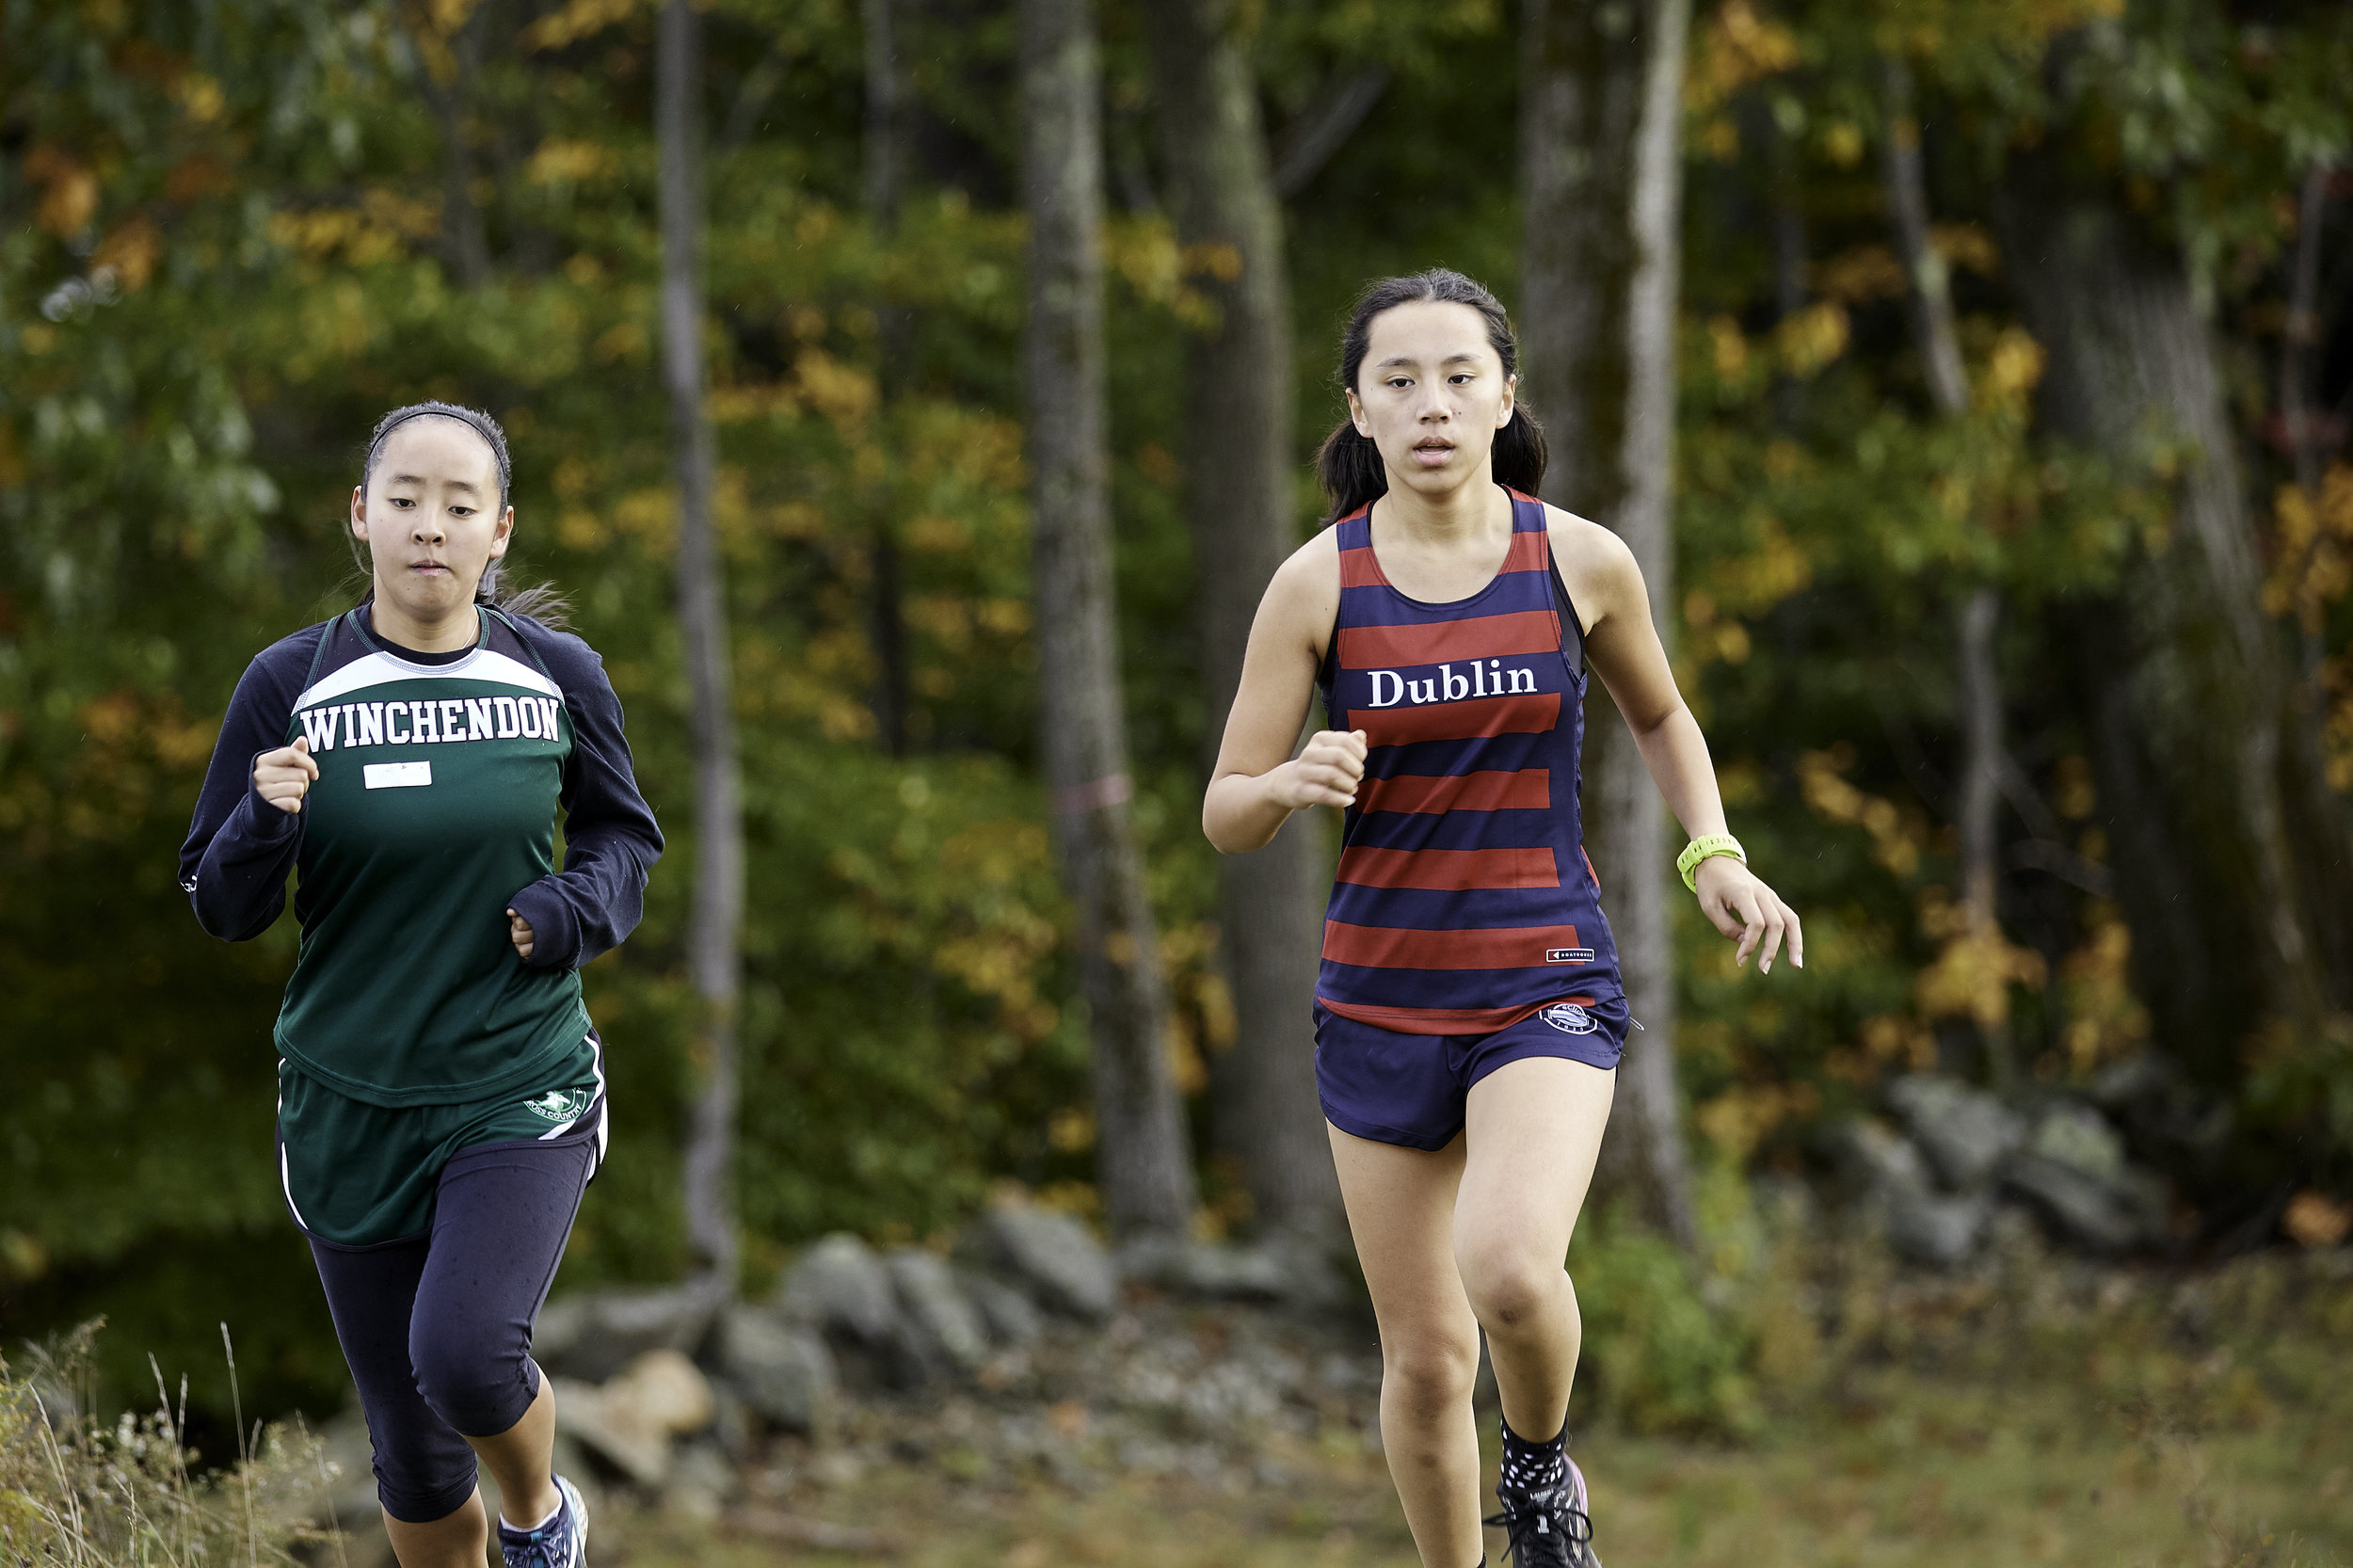 Dublion Invitational - October 12, 2018 - 136551.jpg